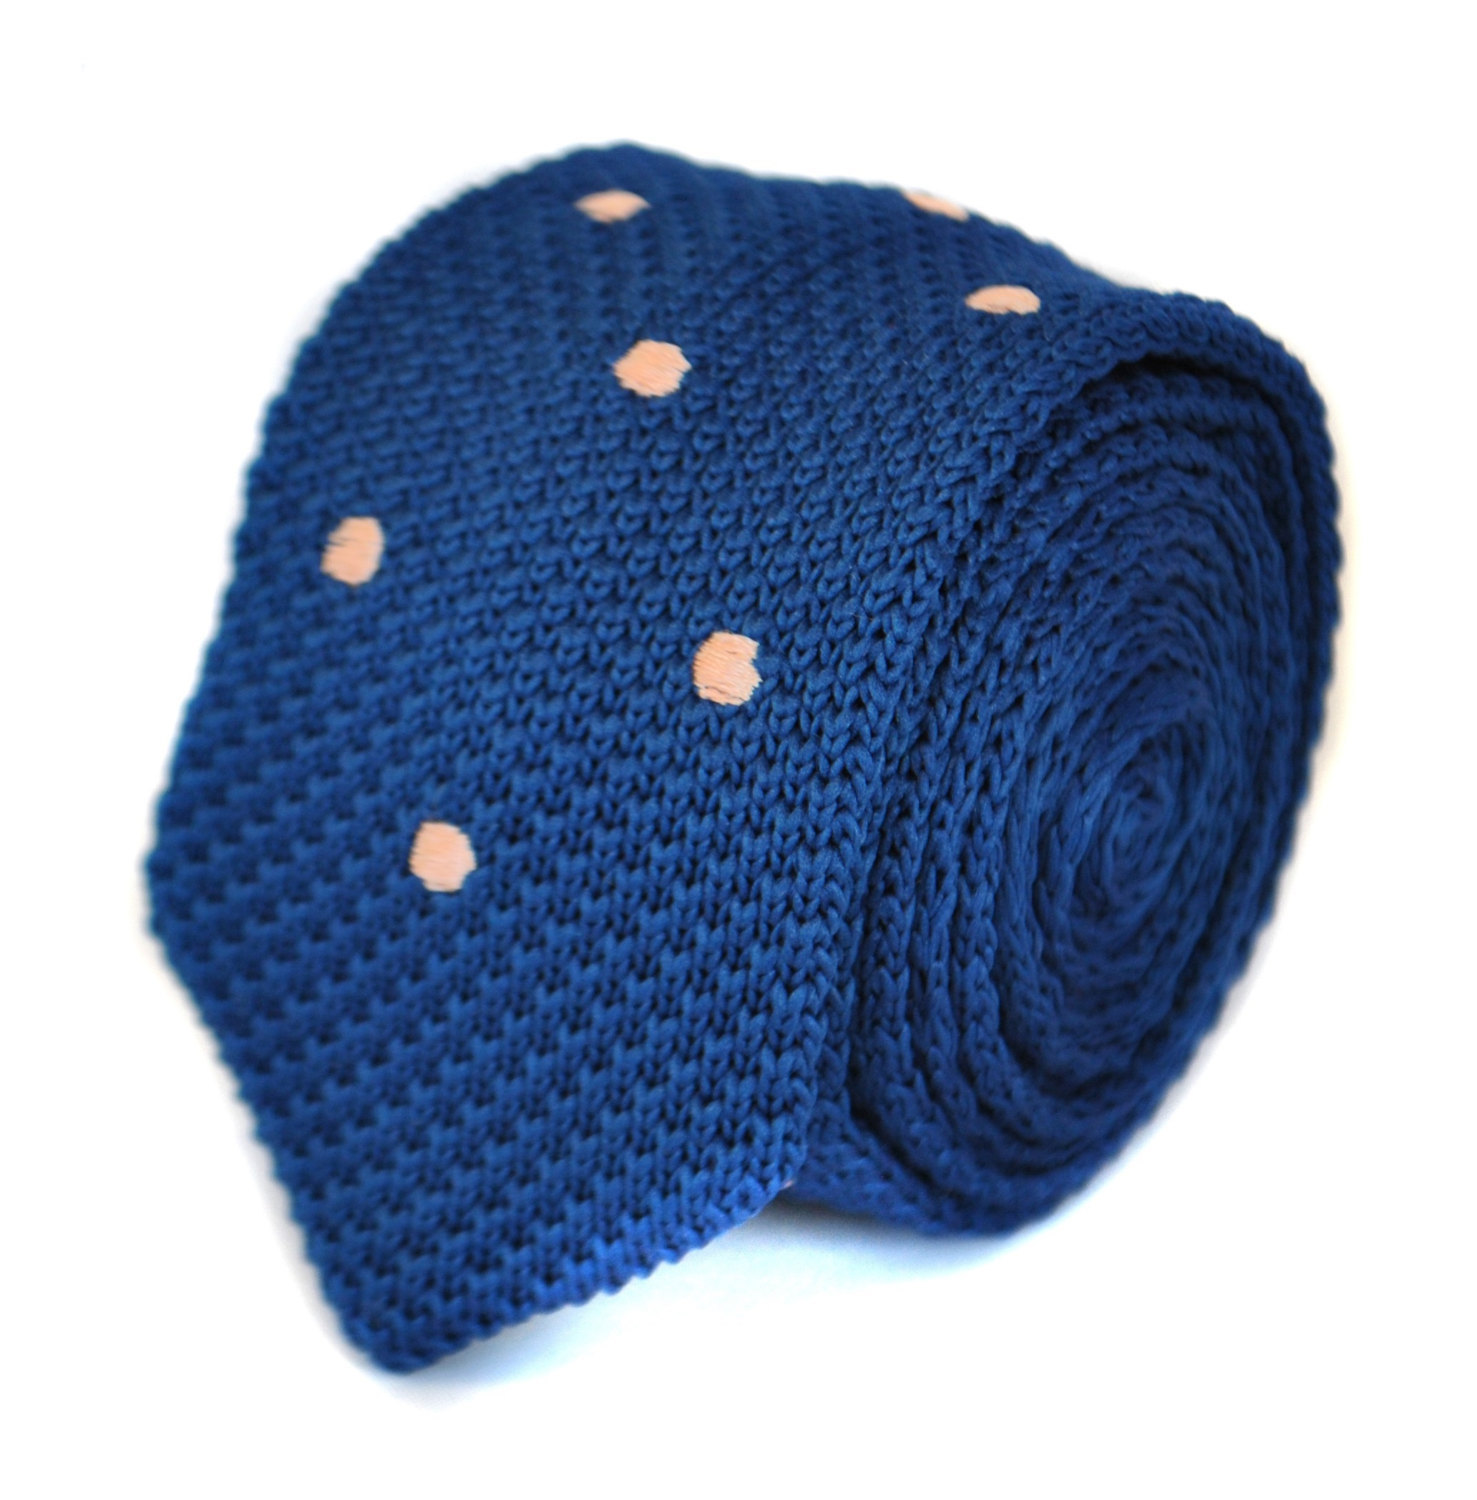 skinny navy blue knitted tie with pink polka spots by Frederick Thomas FT1859